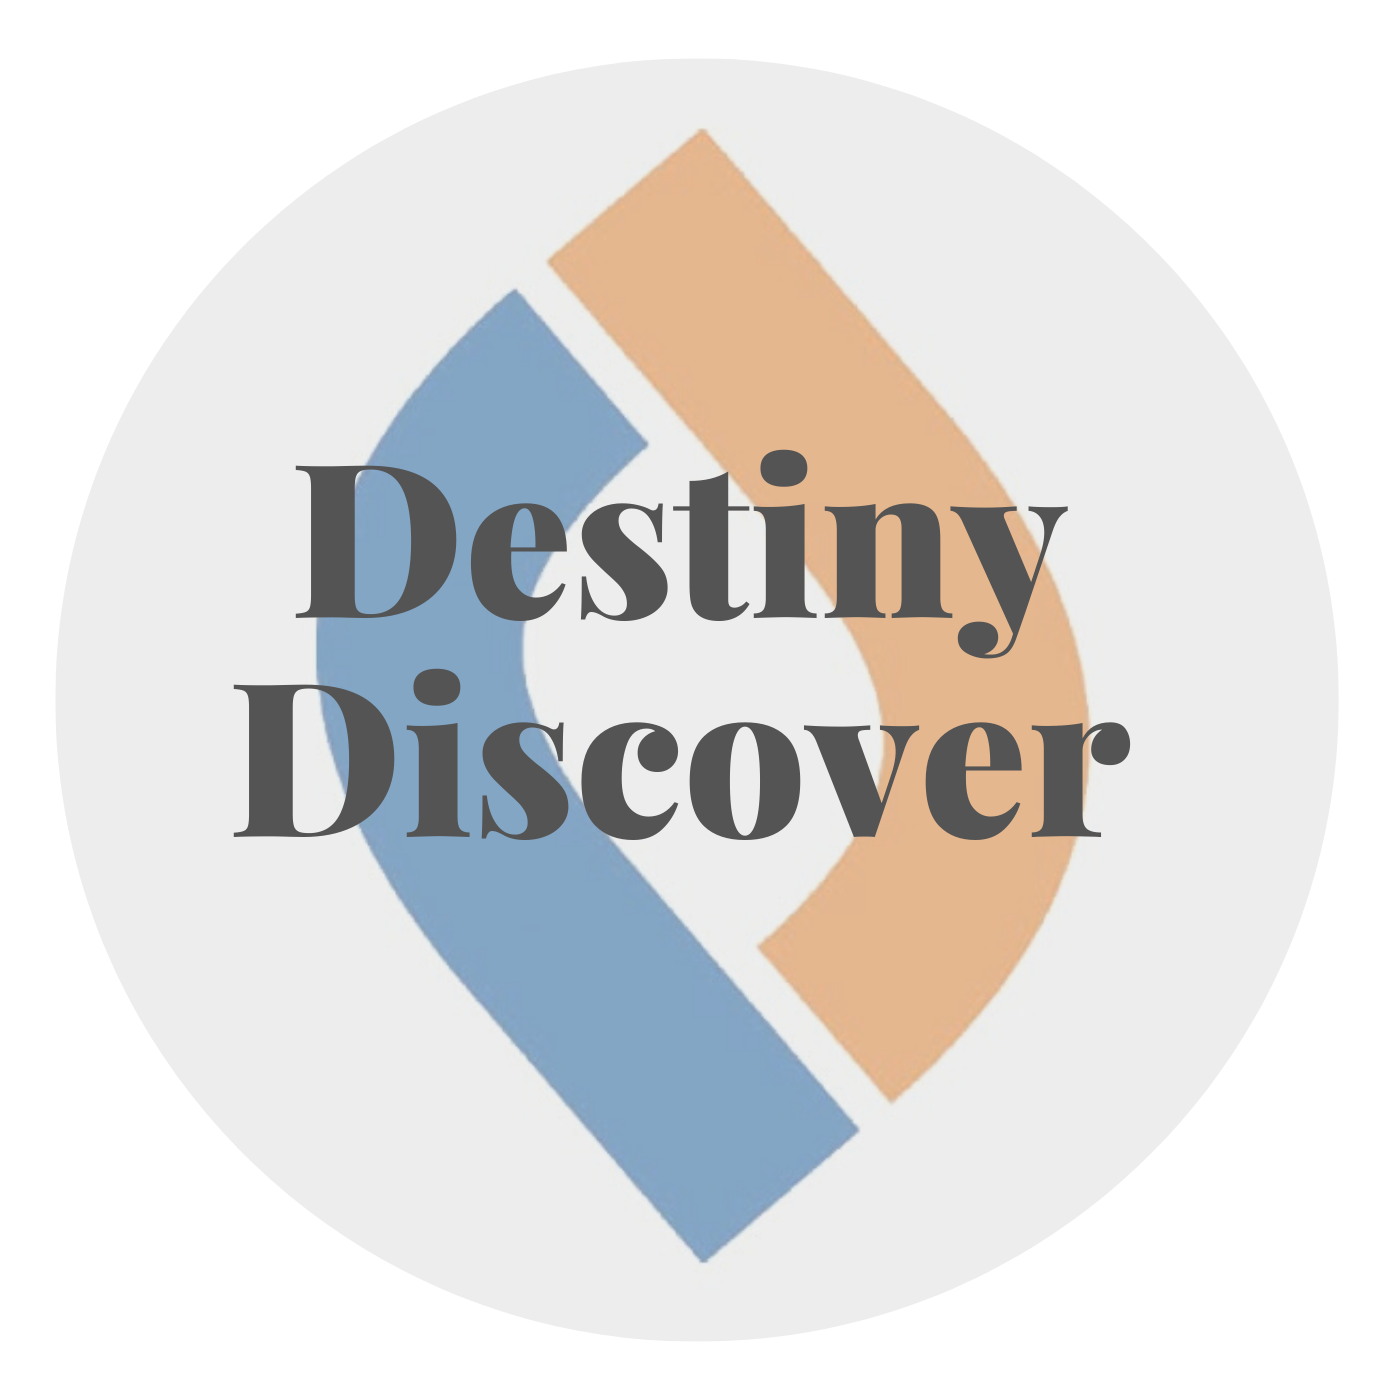 Destiny Discoverer